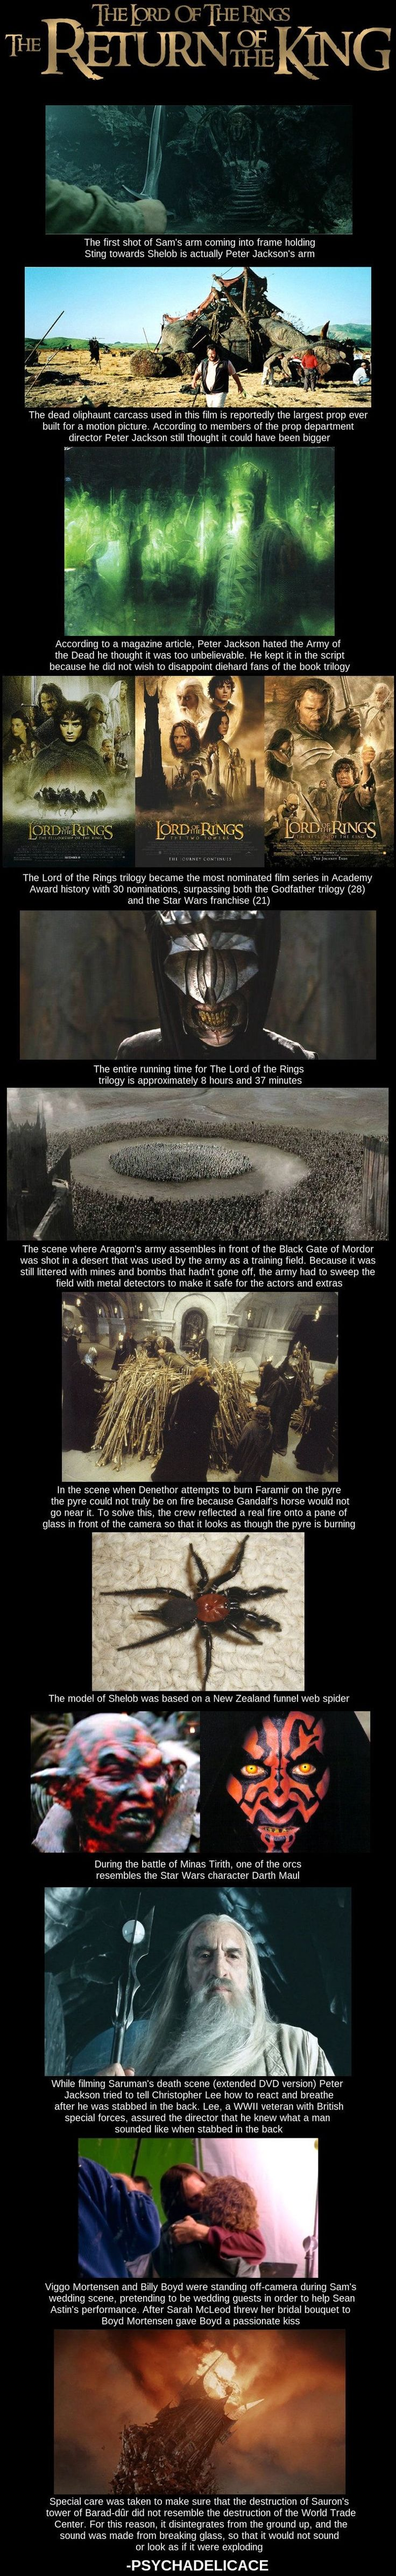 Facts about LotR